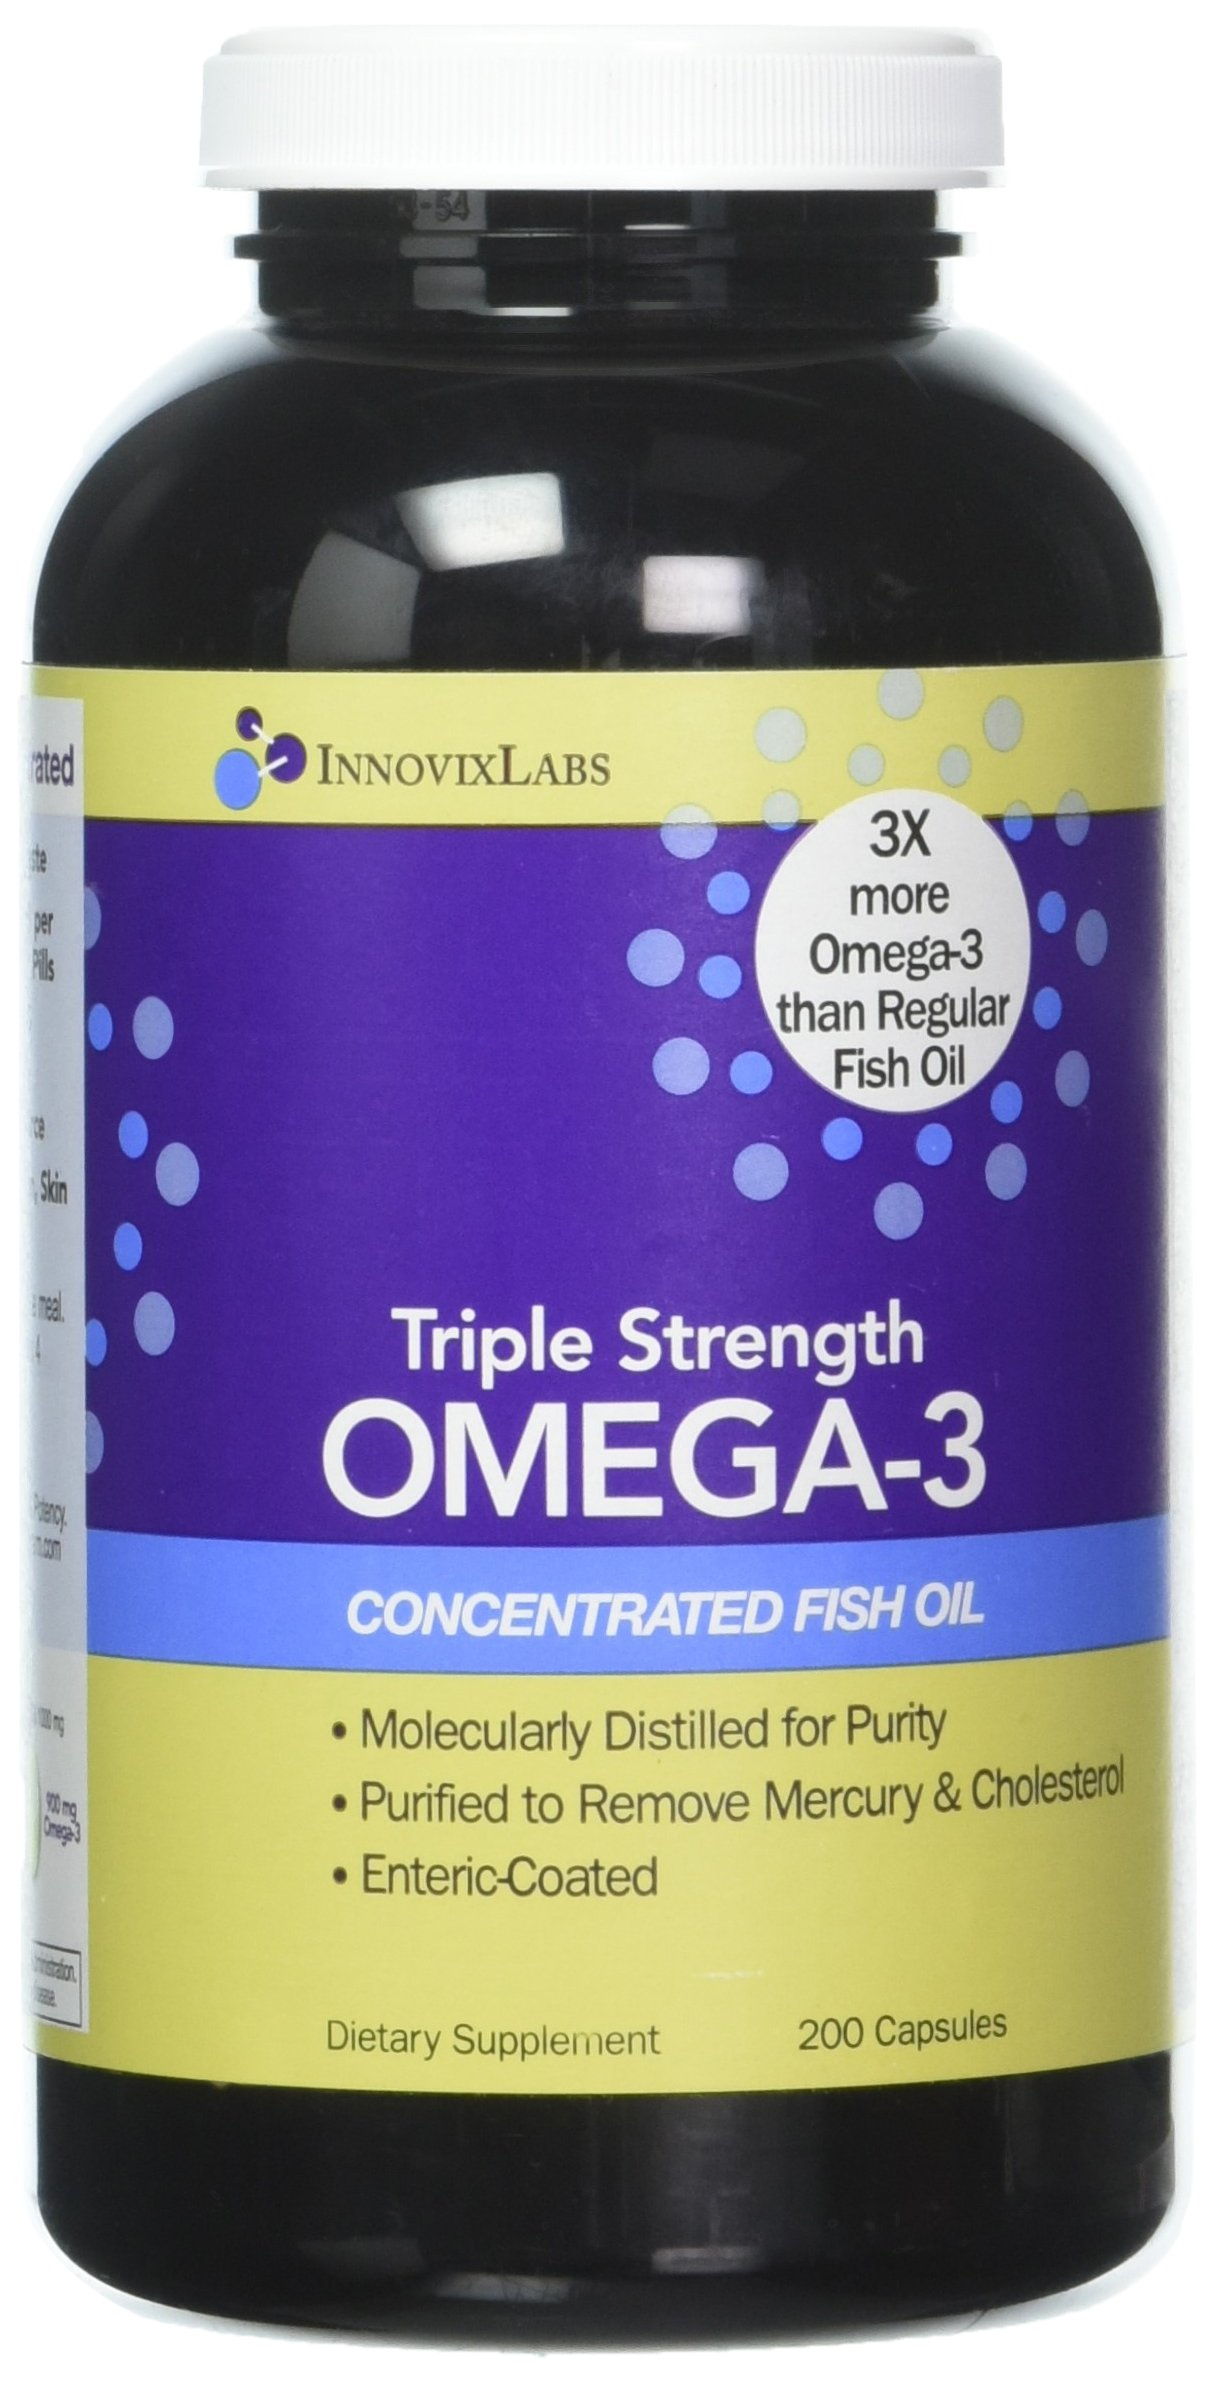 Trunature digestive probiotic capsules 100 for Innovixlabs triple strength omega 3 fish oil